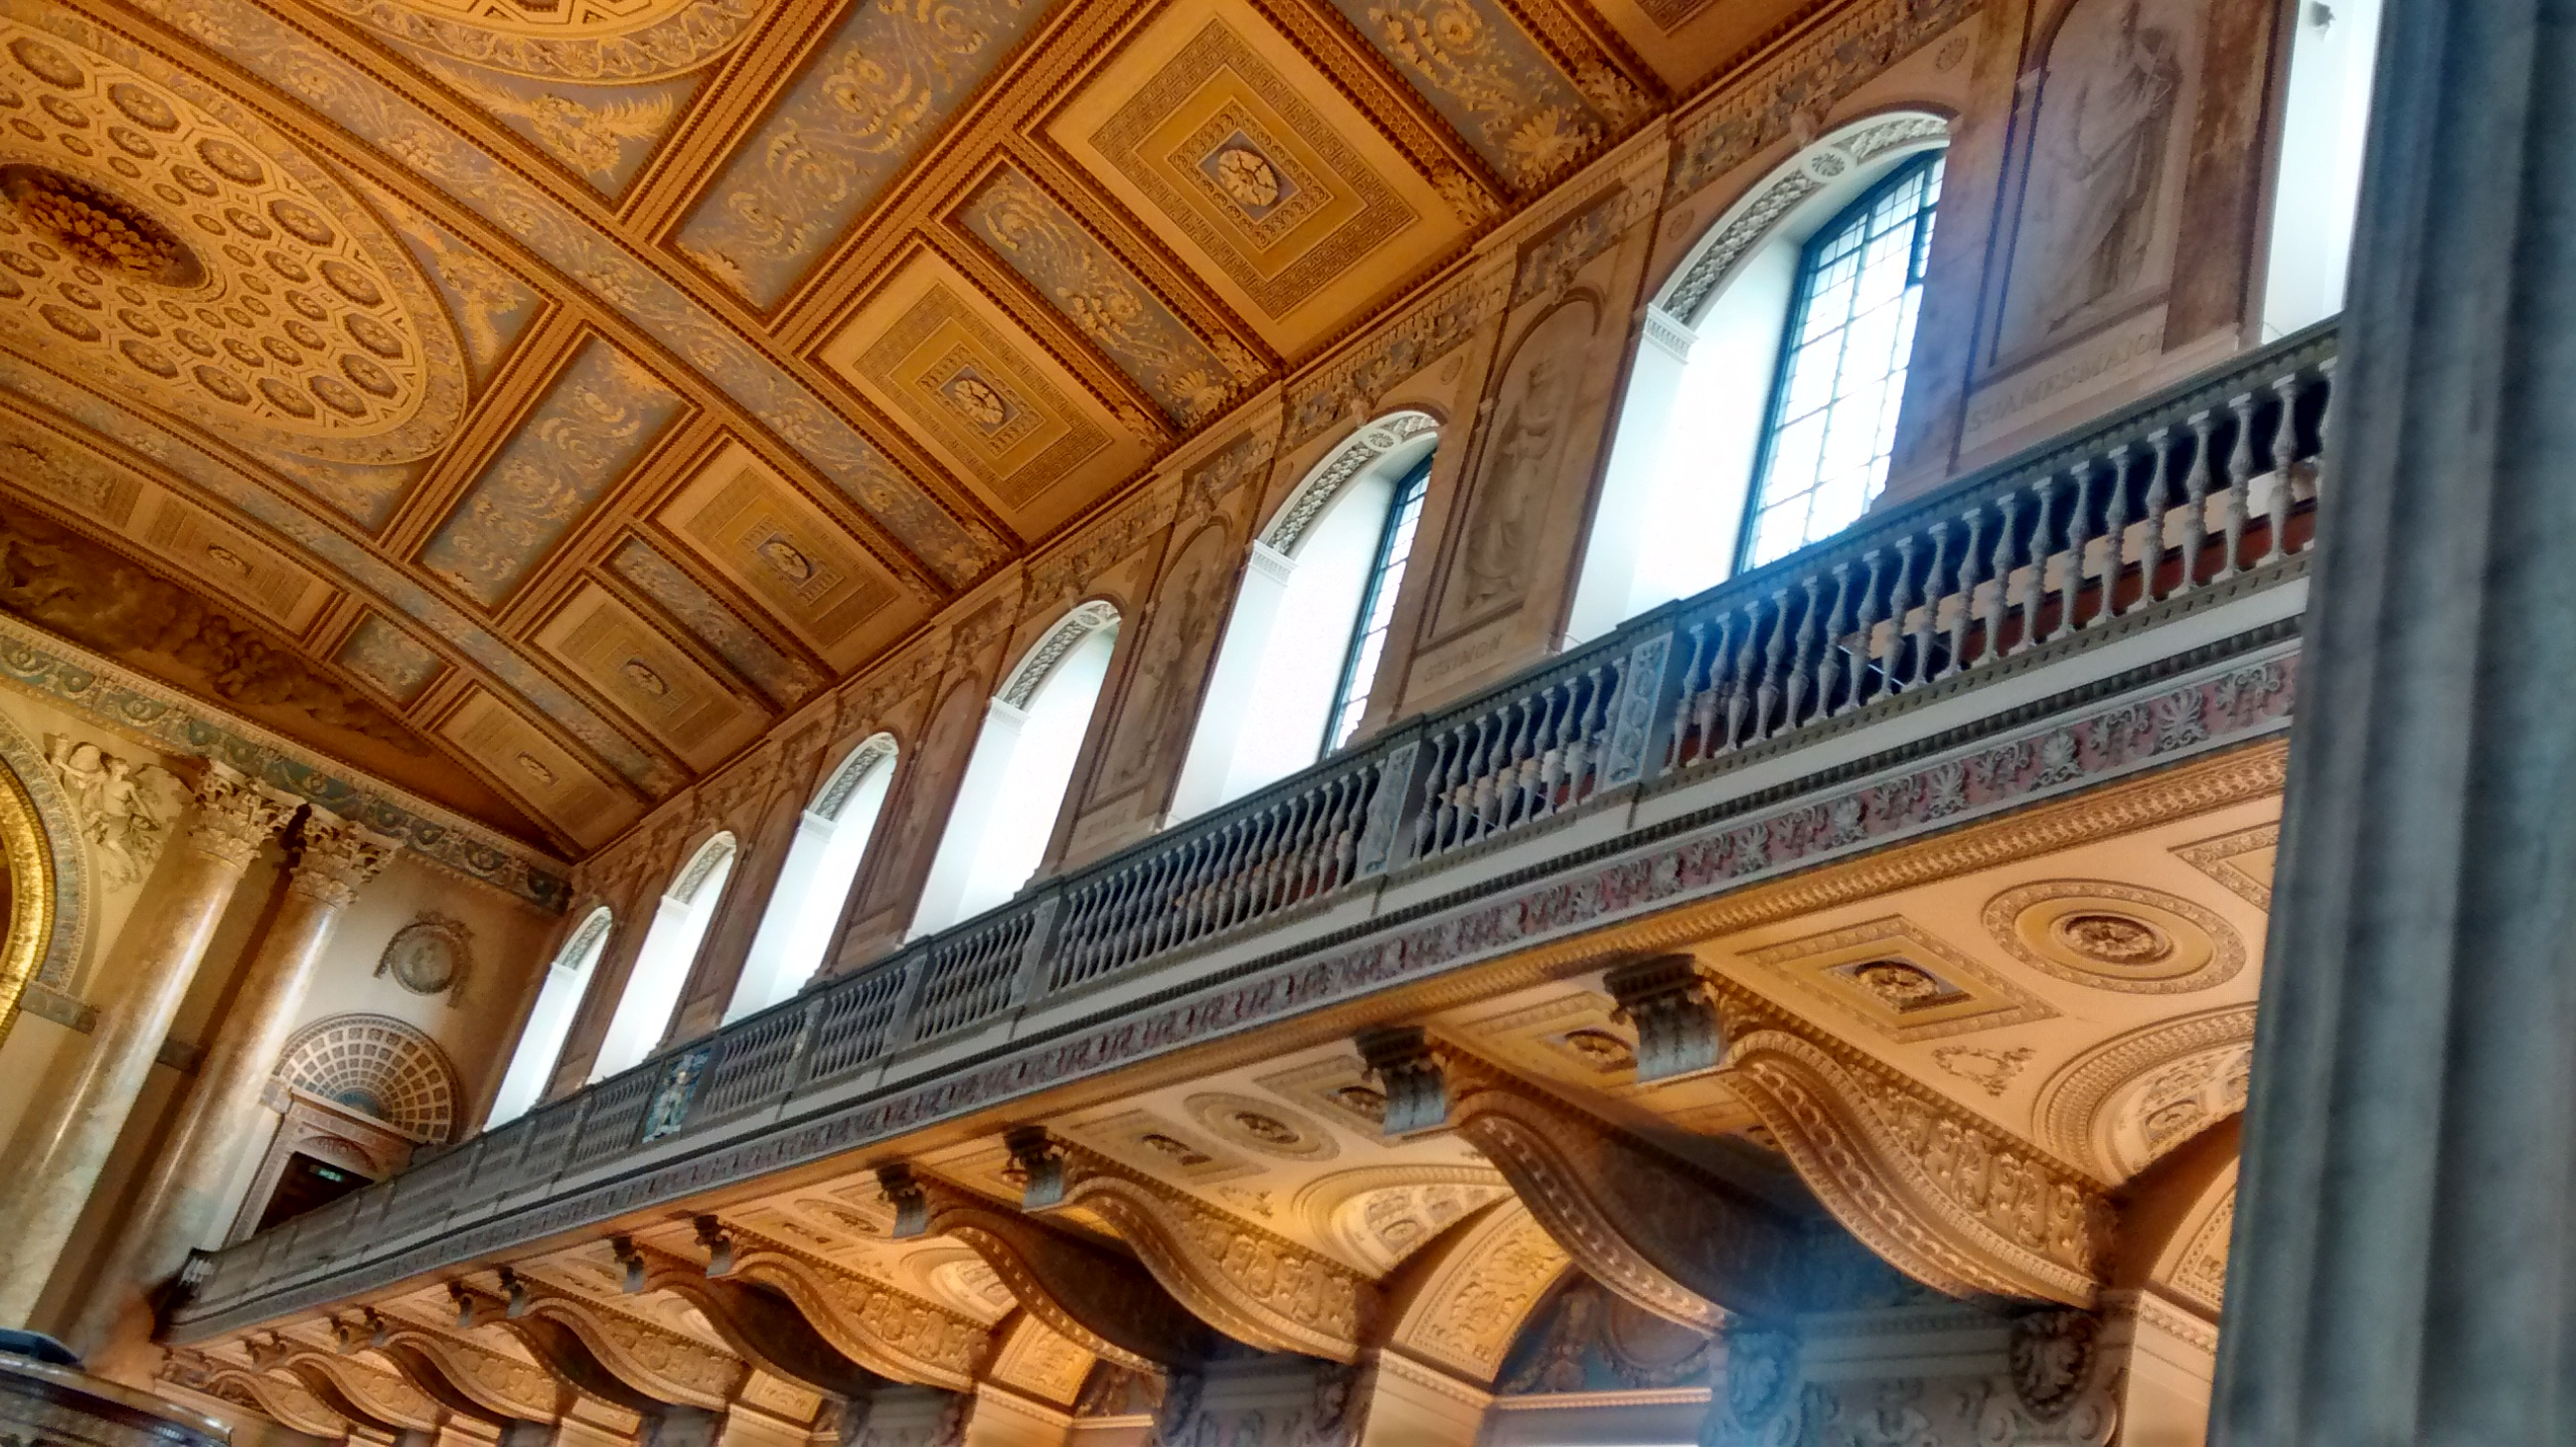 The beautifully restored ceiling of Painted Hall and Chapel